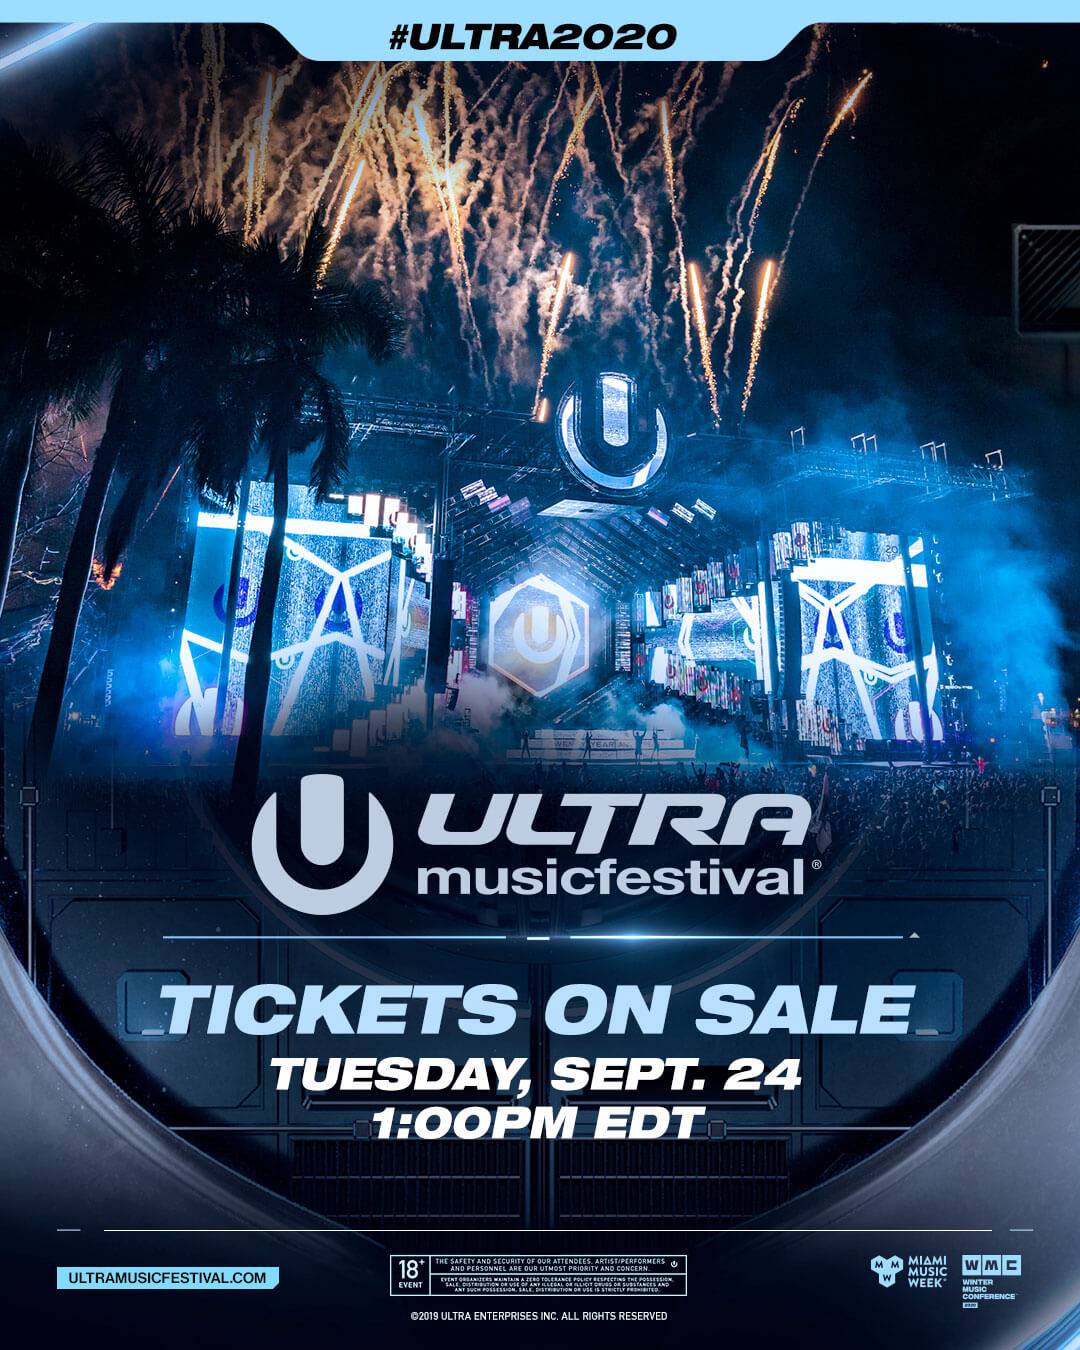 Ultra Festival Miami 2020.Ultra Music Festival 2020 Tickets On Sale September 24